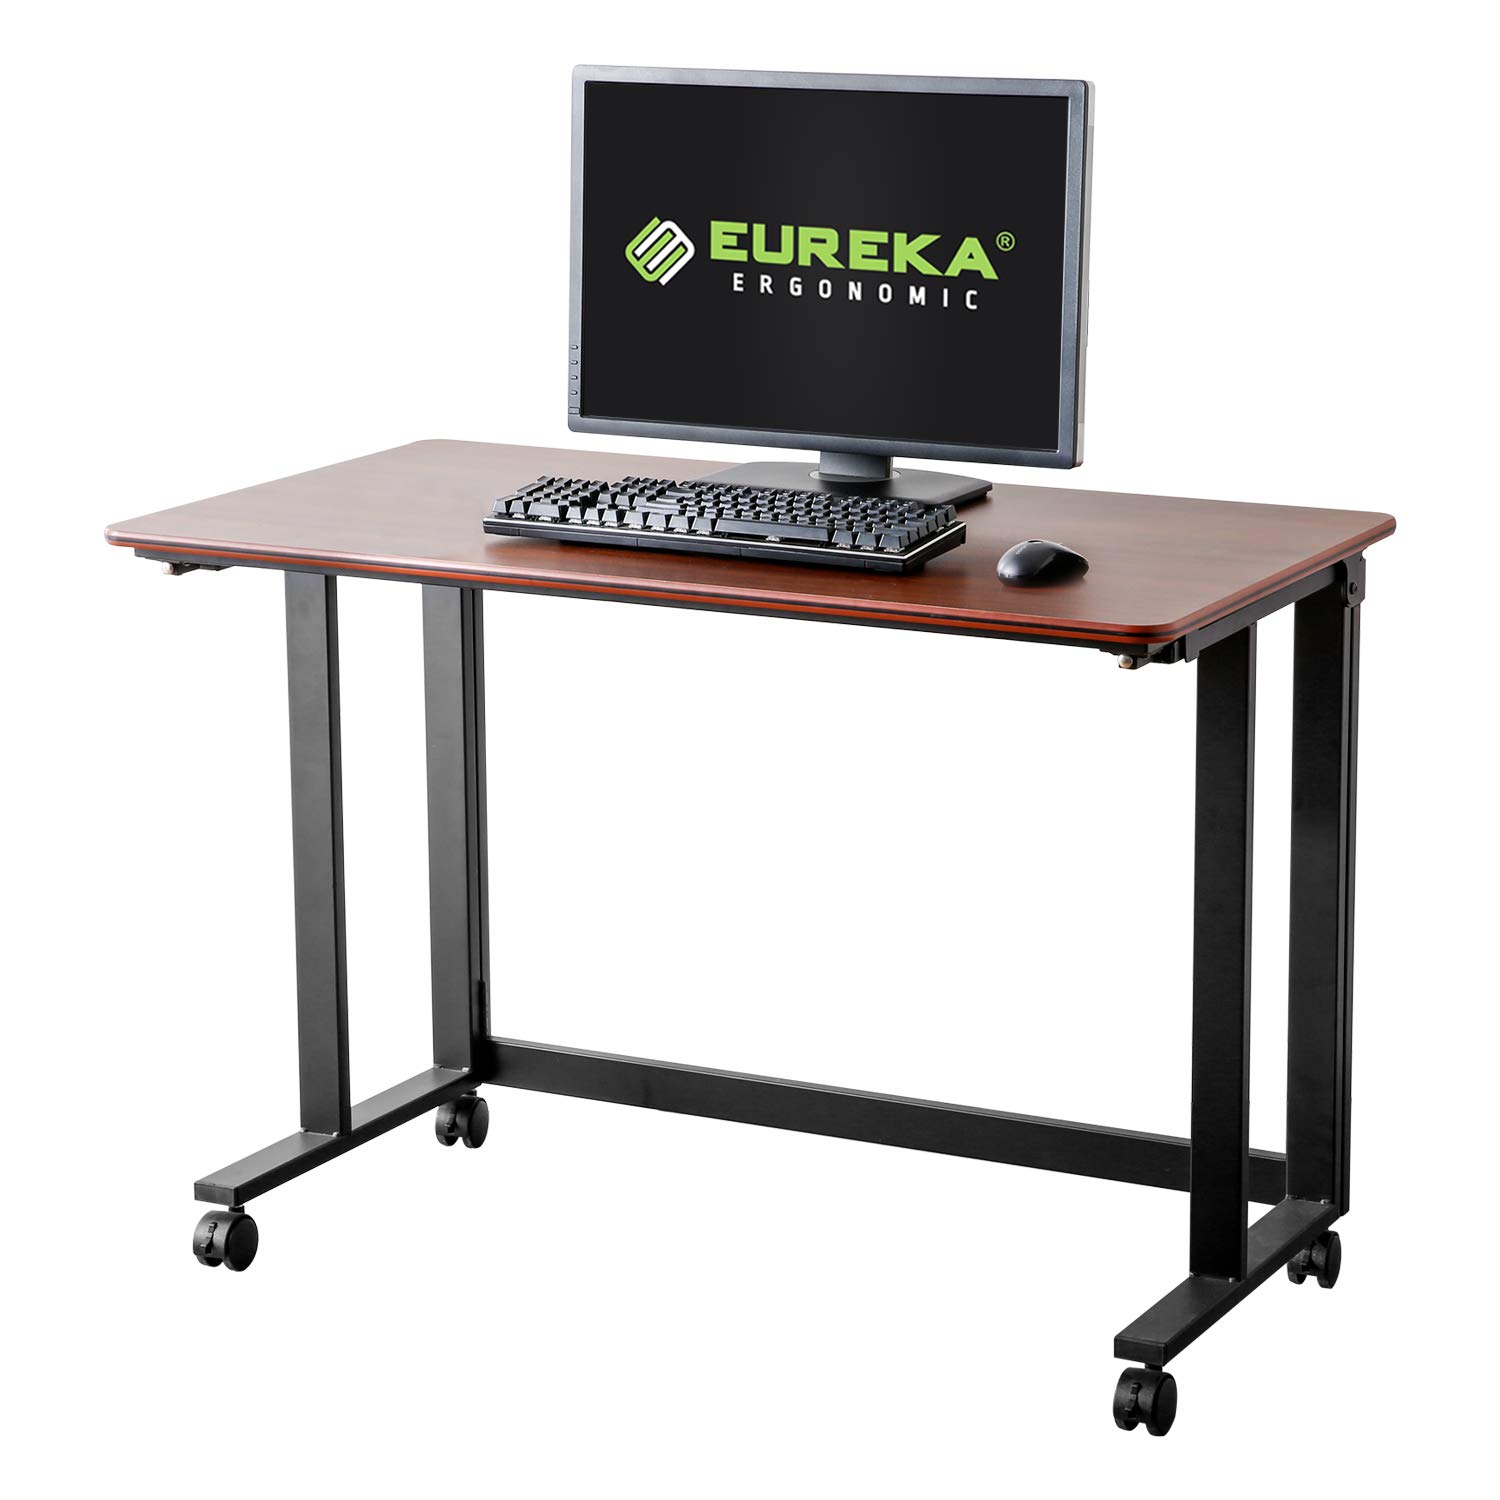 Eureka Ergonomic Rolling Desk, 43 Mobile Utility Table Folding Desk with Four Lockable Wheels Large Work Space One Button to Fold no Assembling